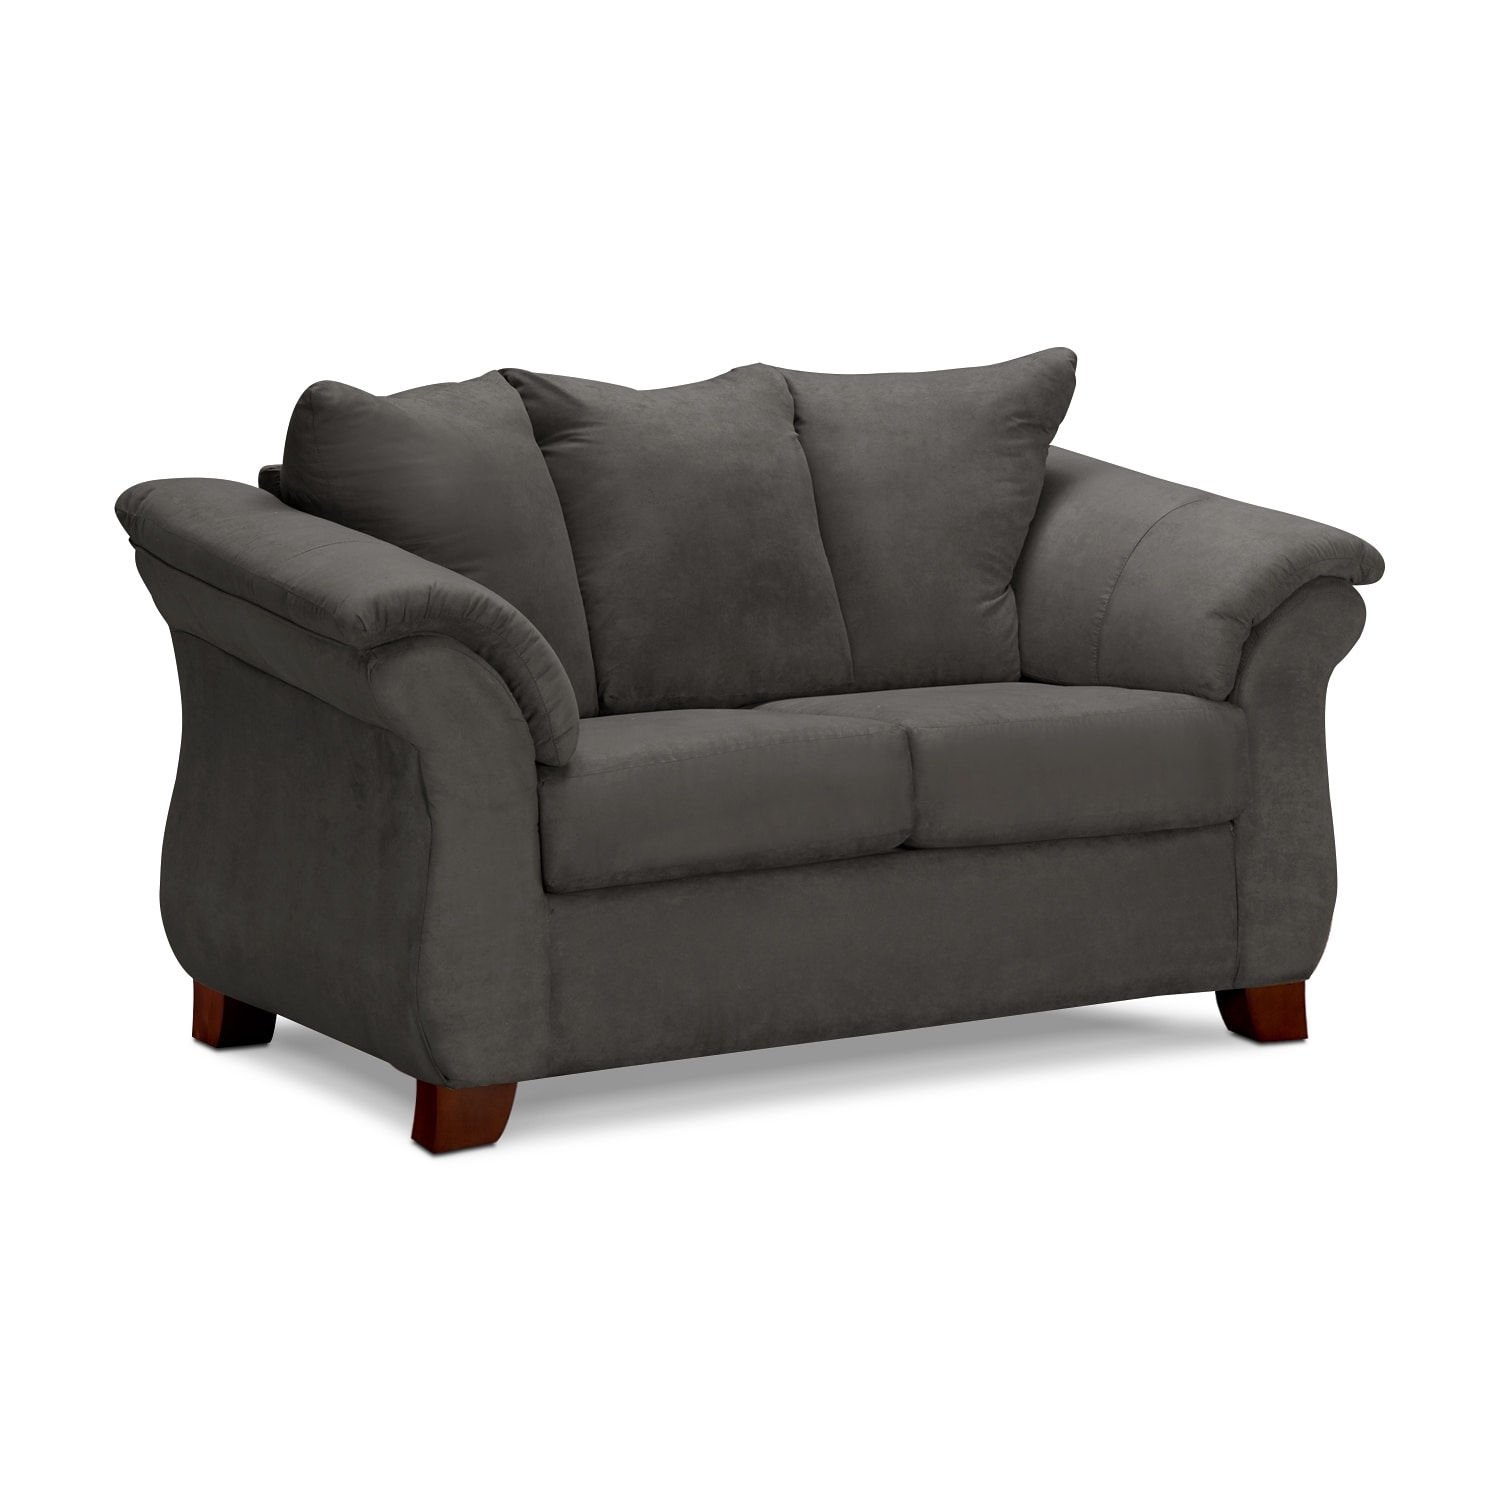 Adrian Loveseat - Graphite